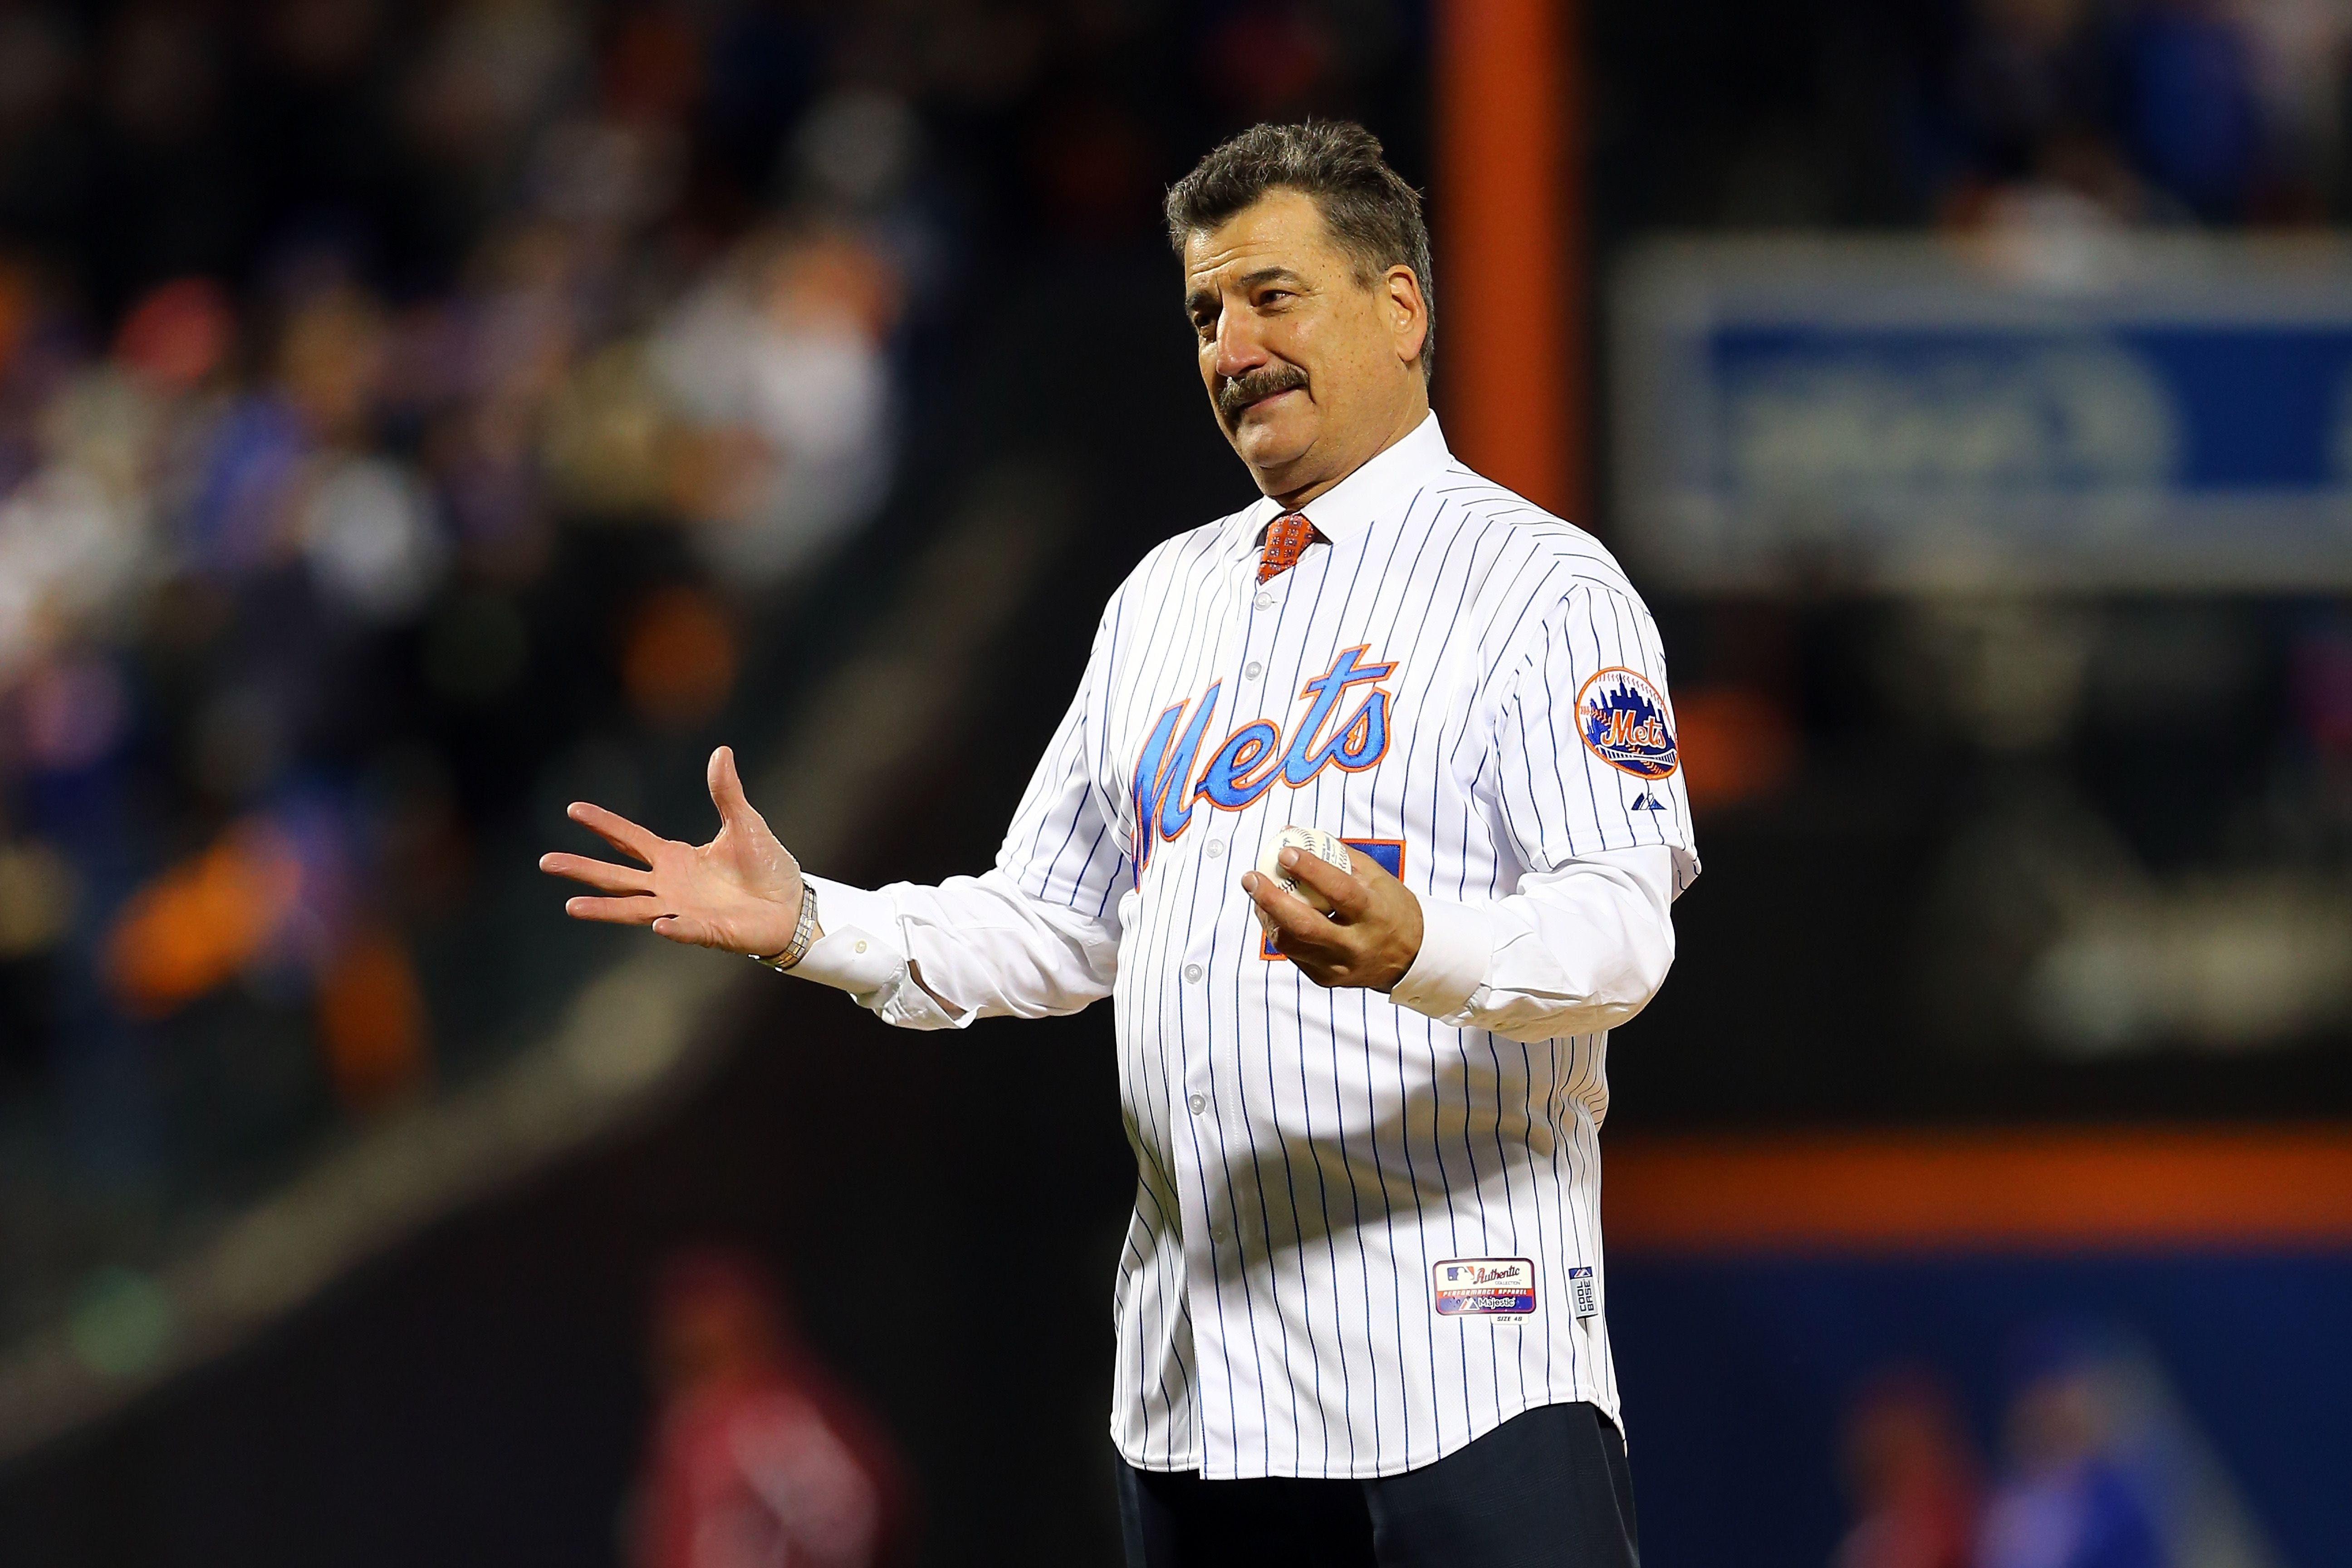 Keith Hernandez says 'you gotta hit' Ronald Acuña referring to Jose Urena's plunking